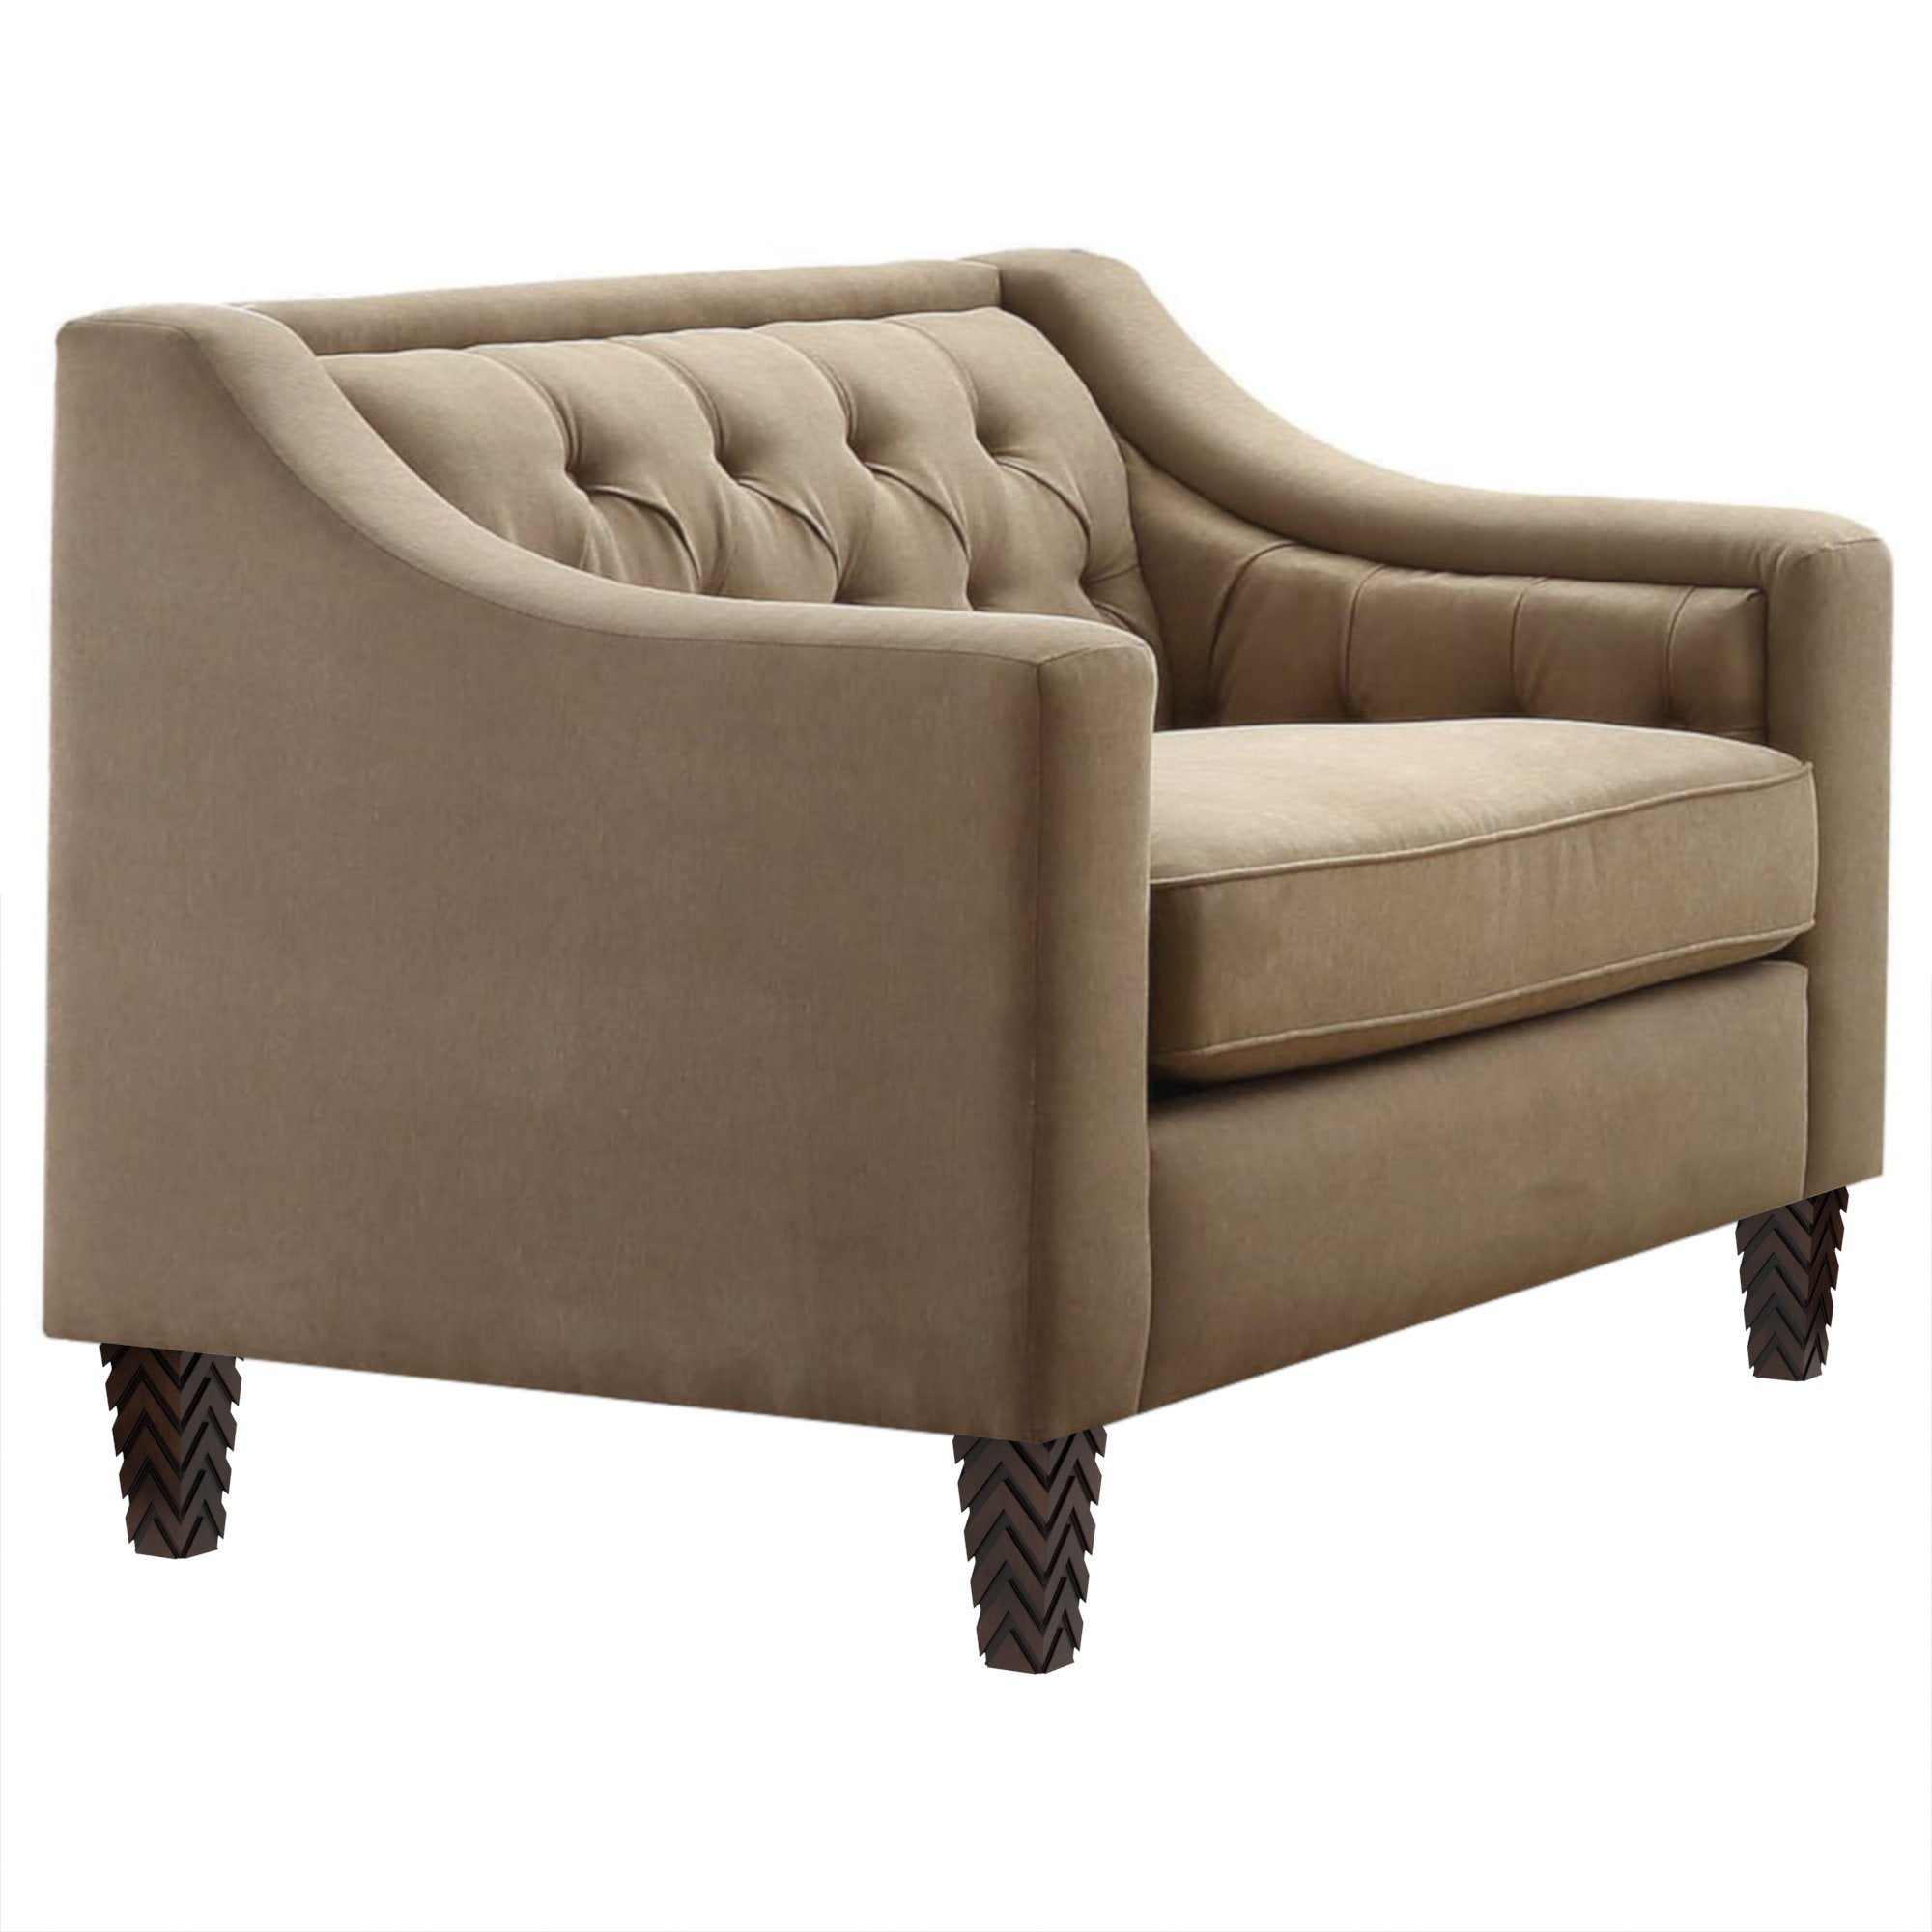 "Sukki Tufted Taupe Oversized Chair (41"")"